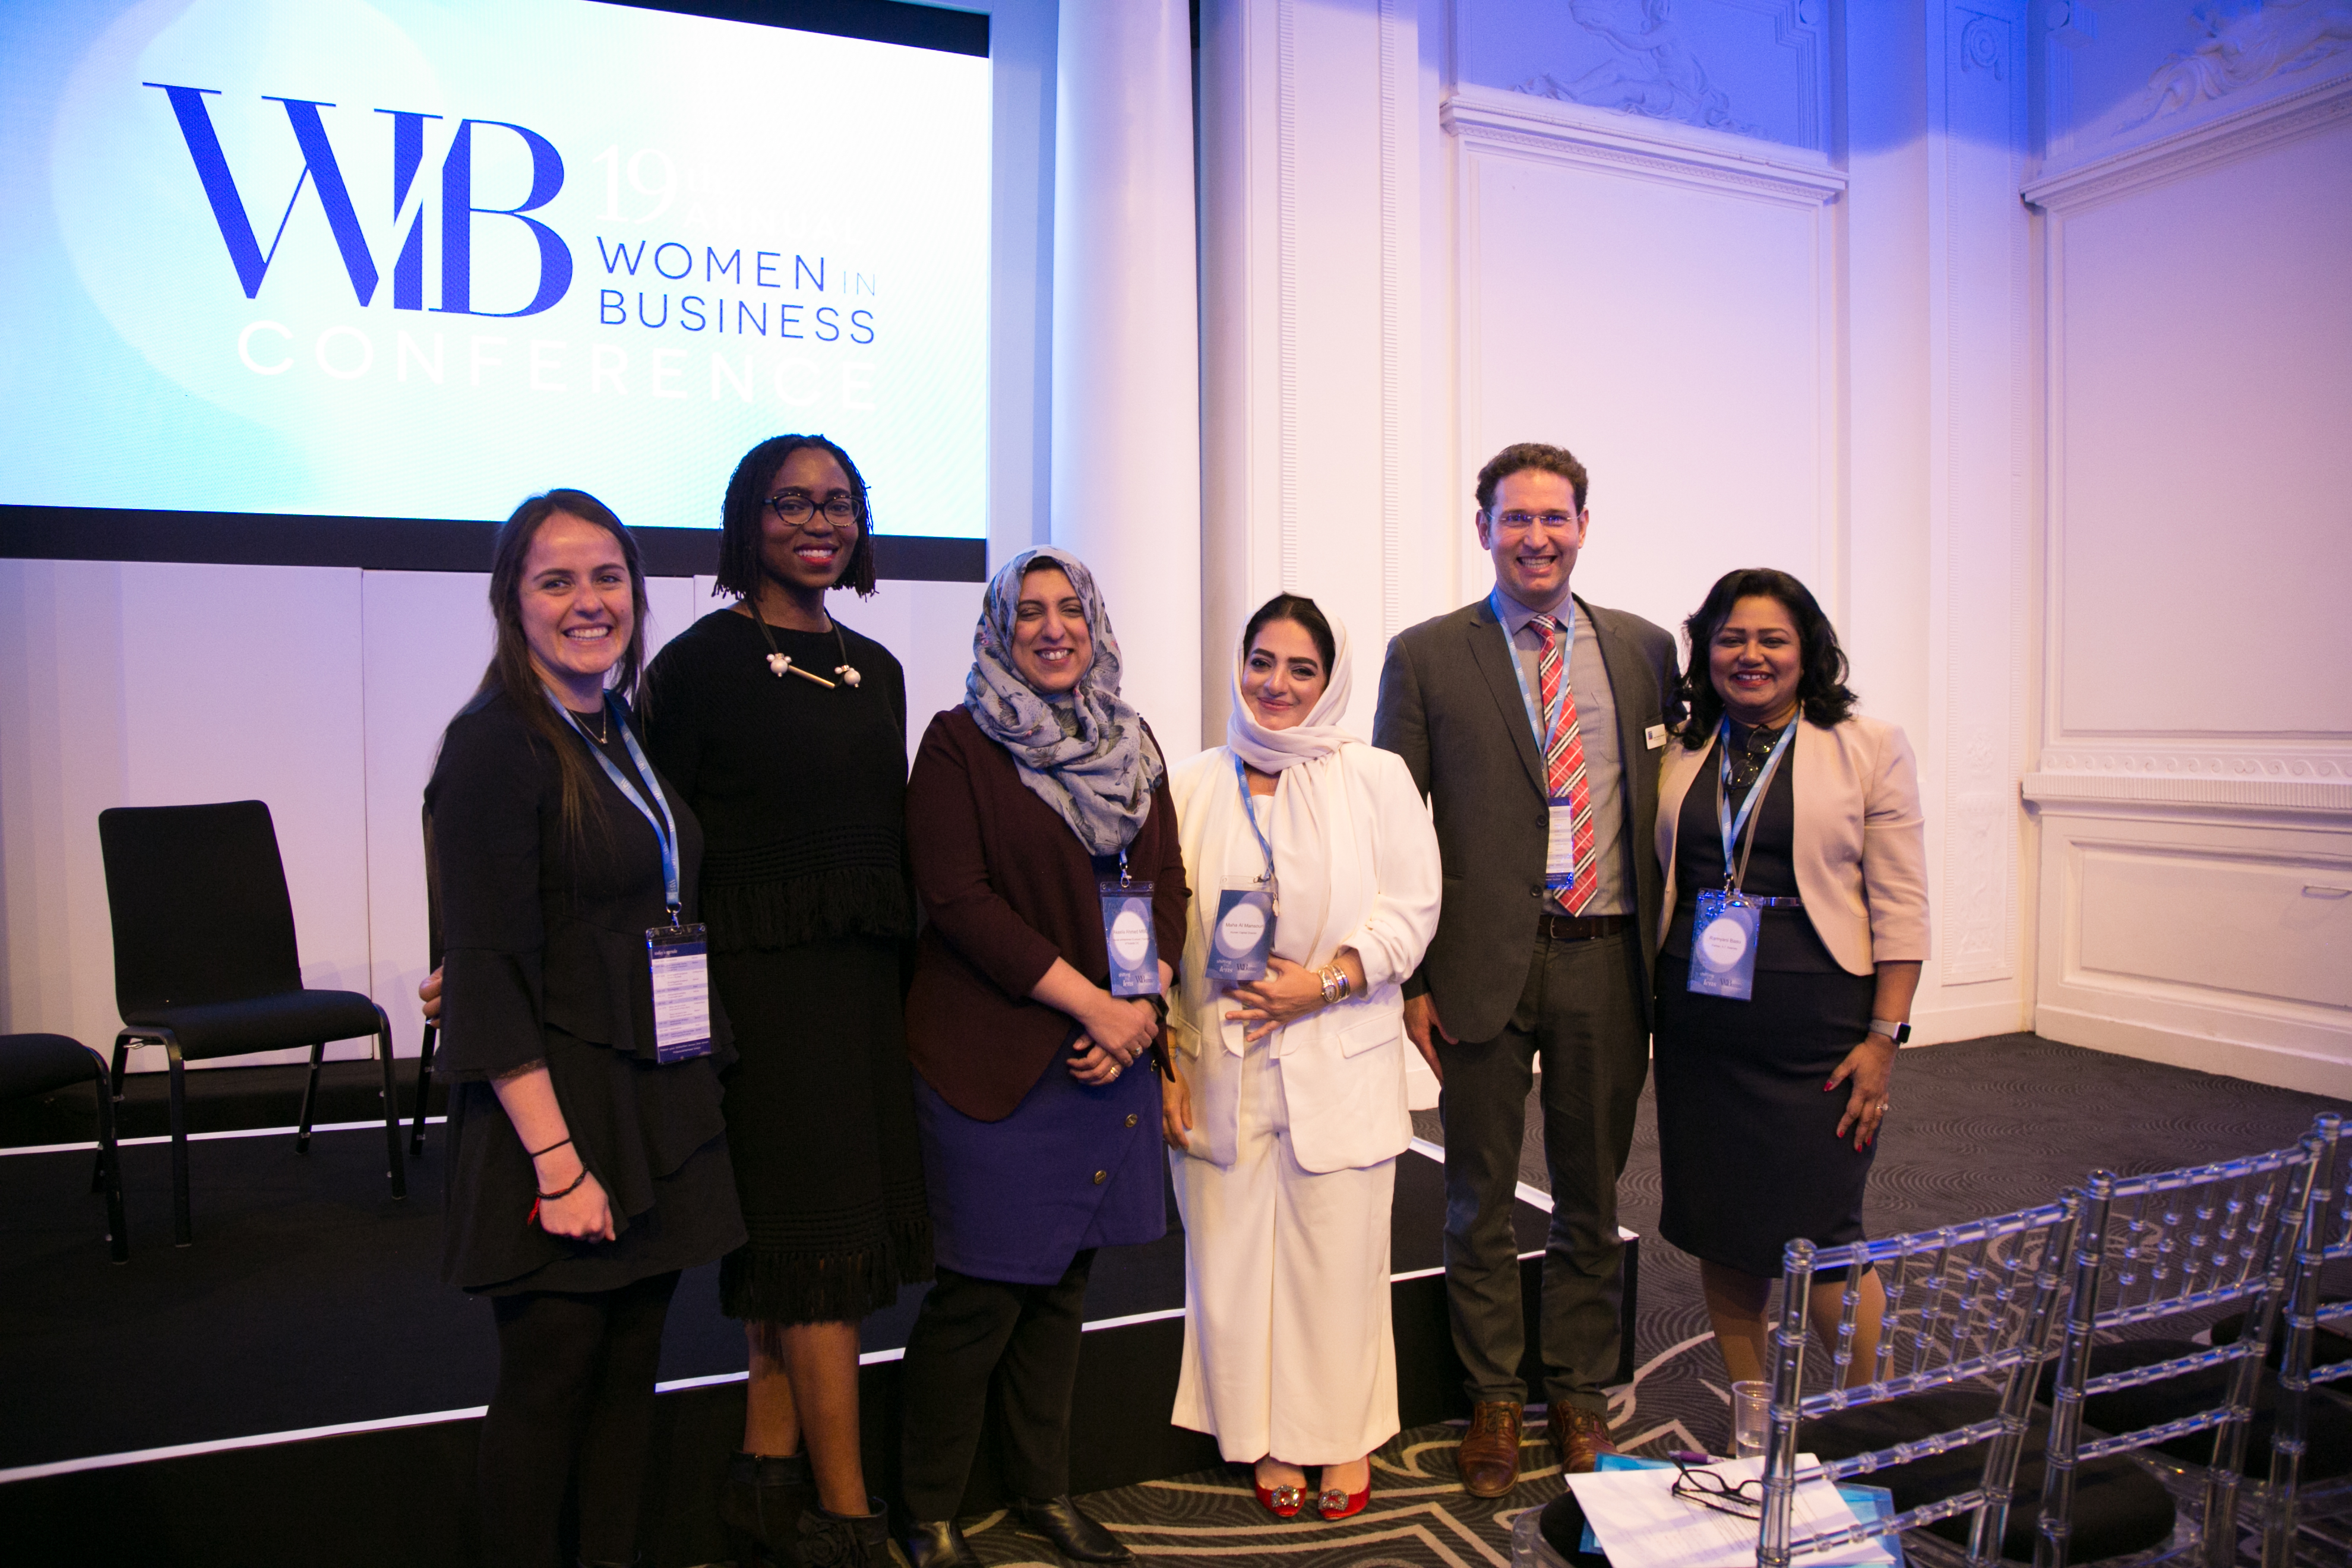 LBS Women in Business Conference